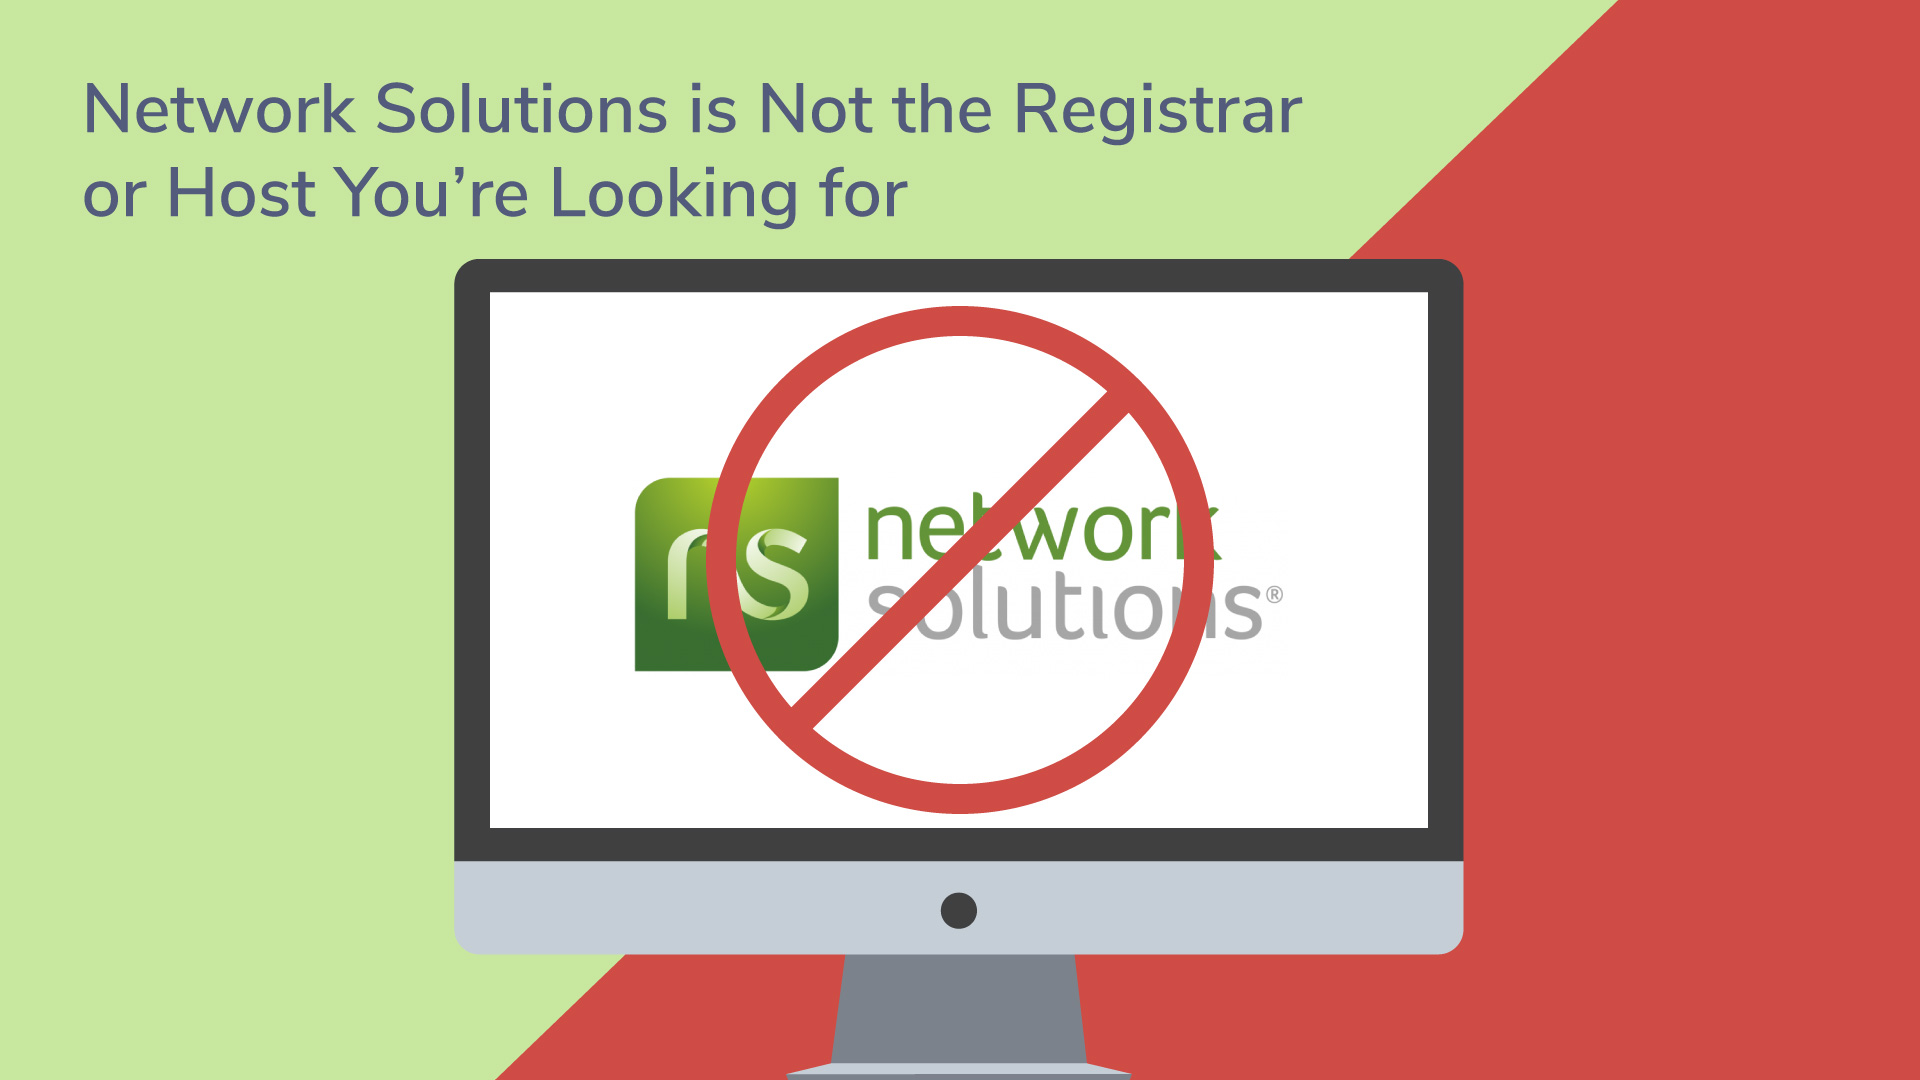 Network solutions is terrible avoid them